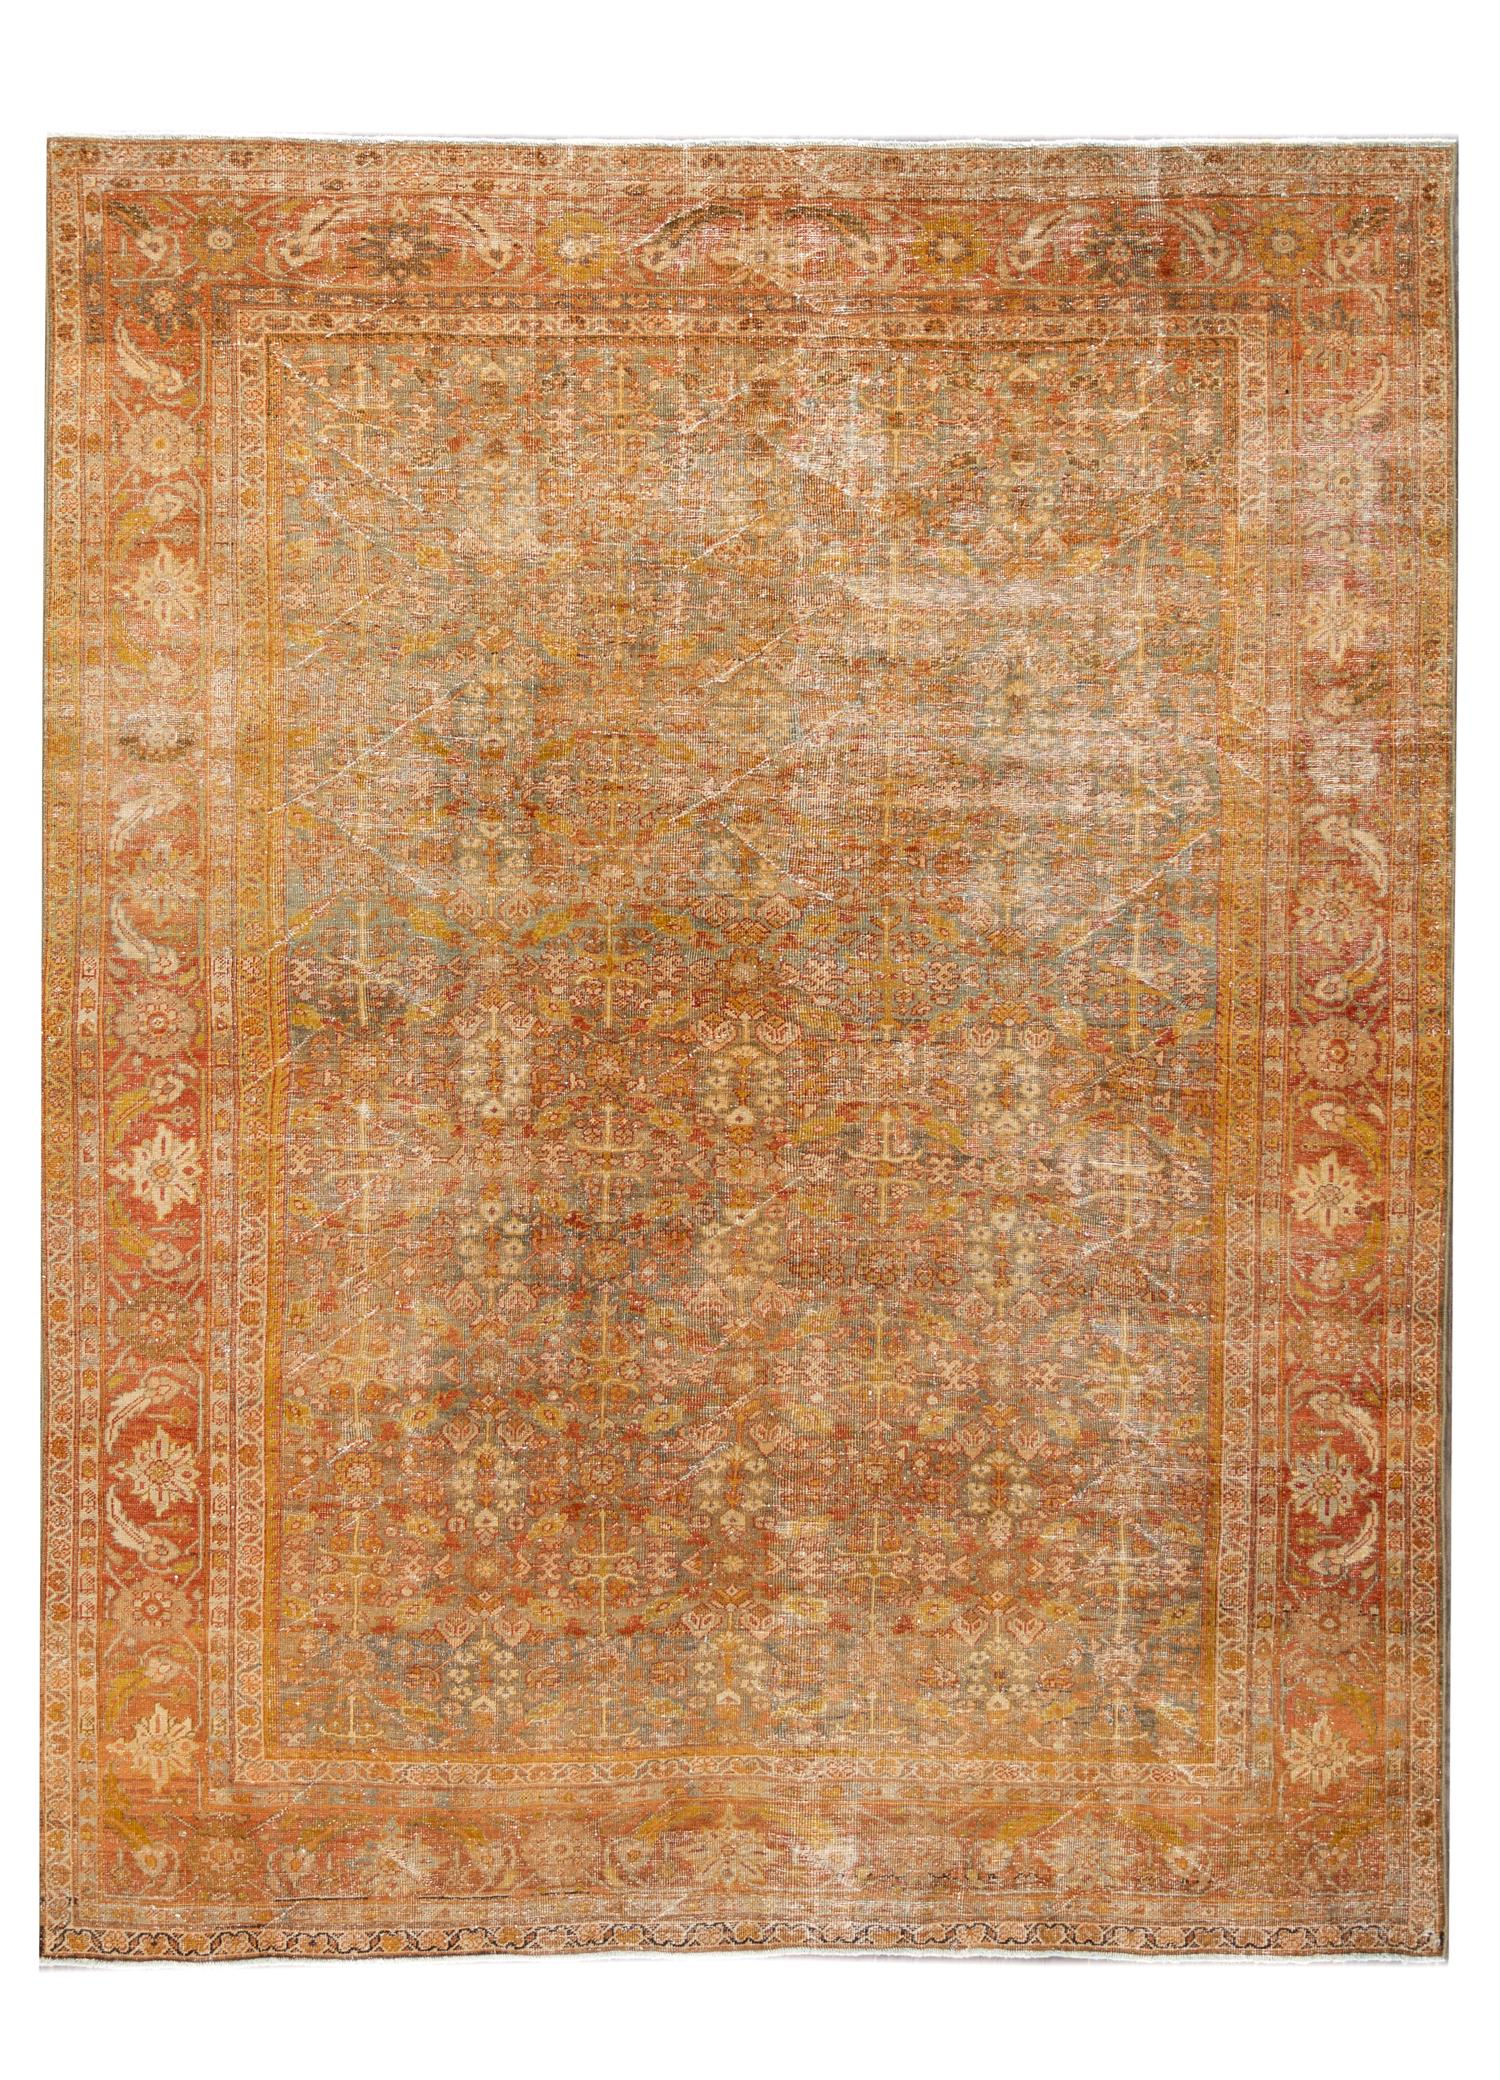 Antique Sultanabad Rug, #10235245, 9' x 11'